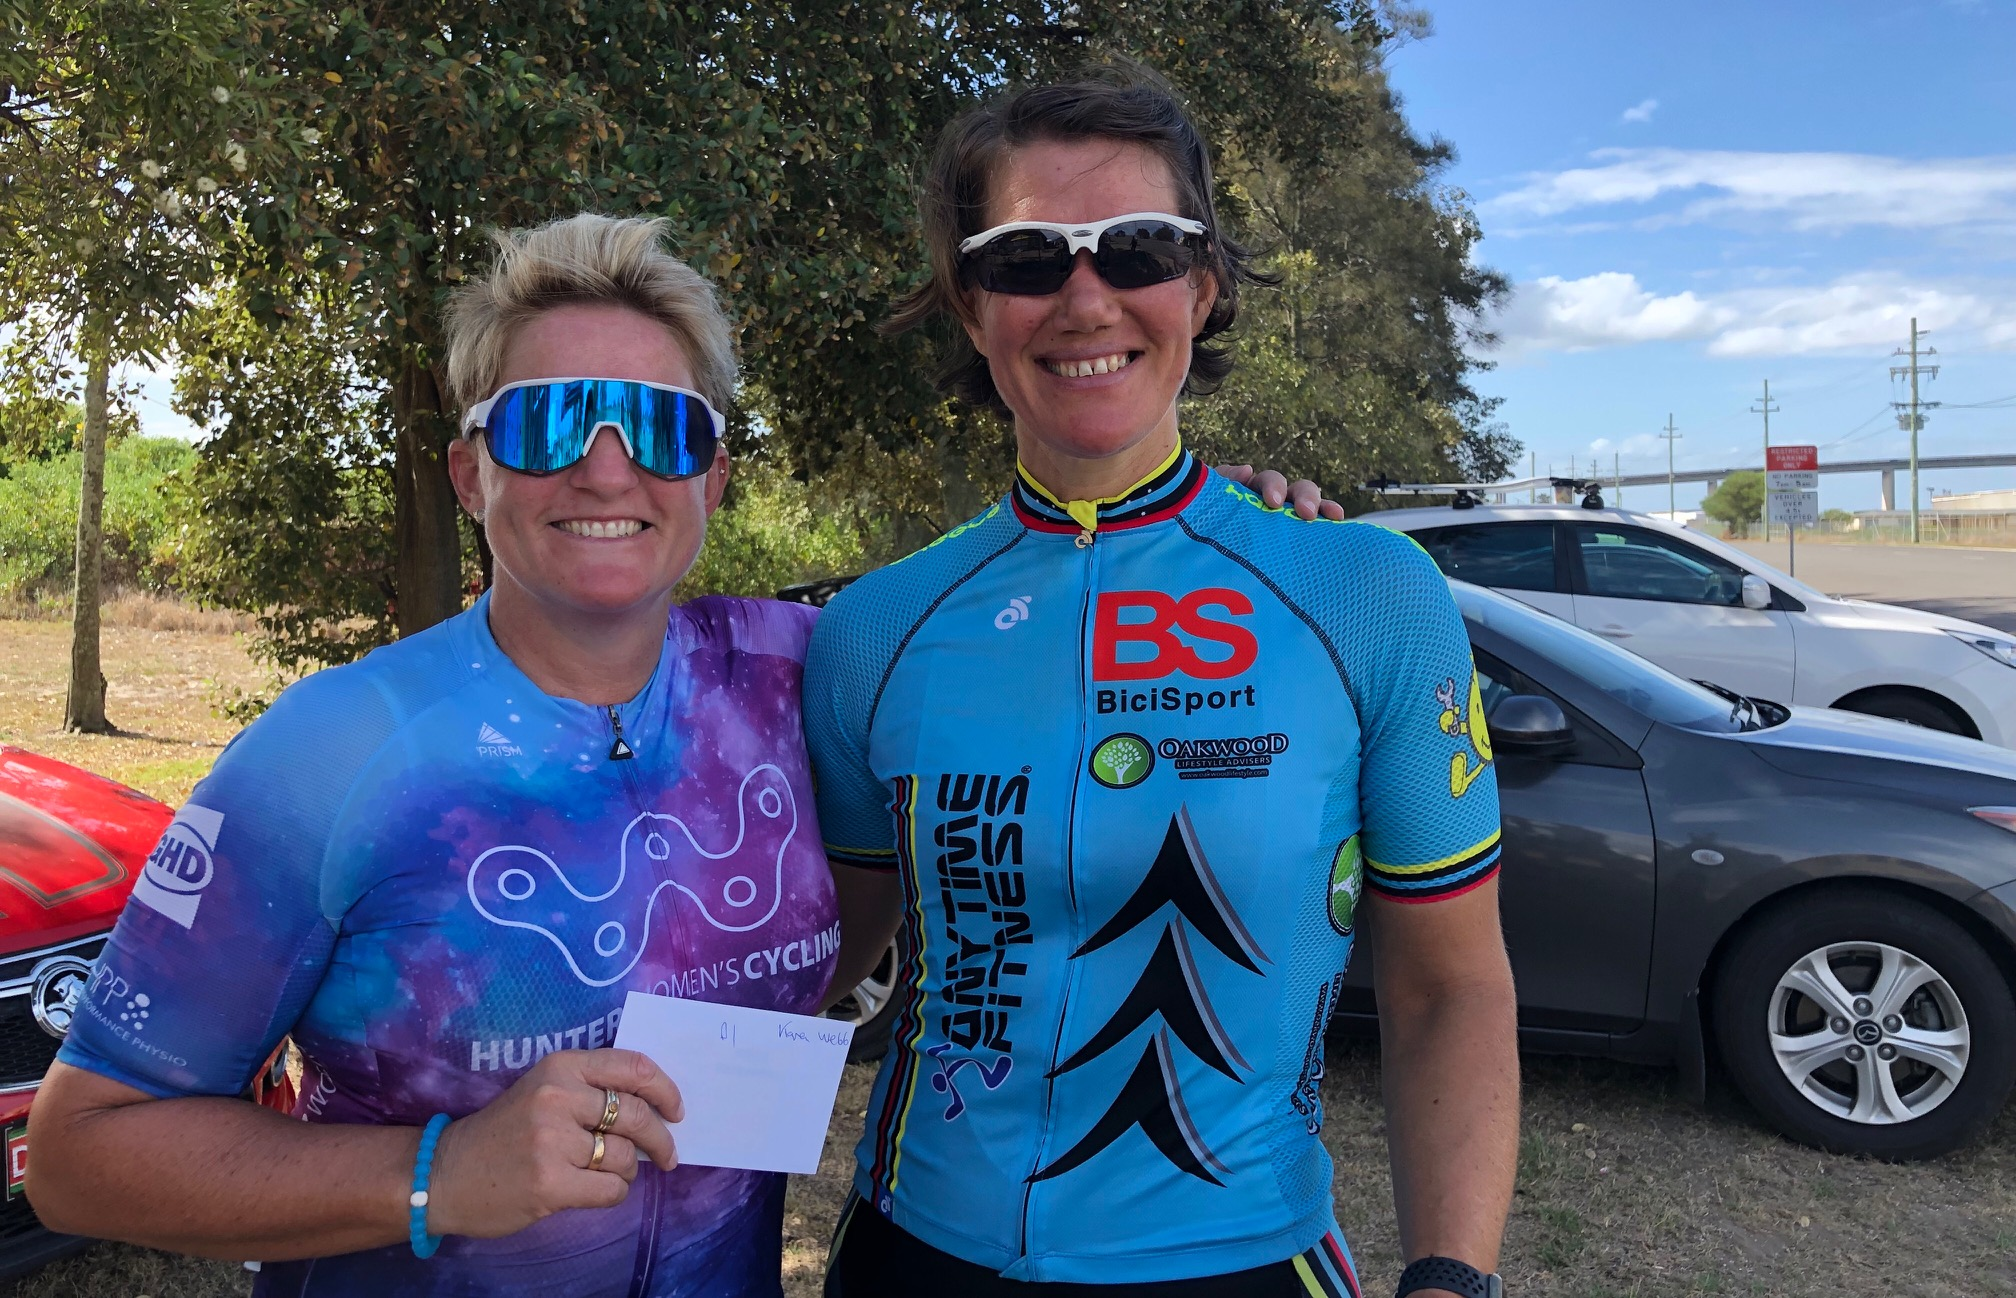 Kooragang Island Newcastle @ 2 Mar - Ruth Strapp (BiciSport) took the win in the Womens Road Race organised by Newcastle Cycling Club with 14 starters. Ruth broke away with 3.5k to the finish with Olivia Gollan, and Ruth took the victory.